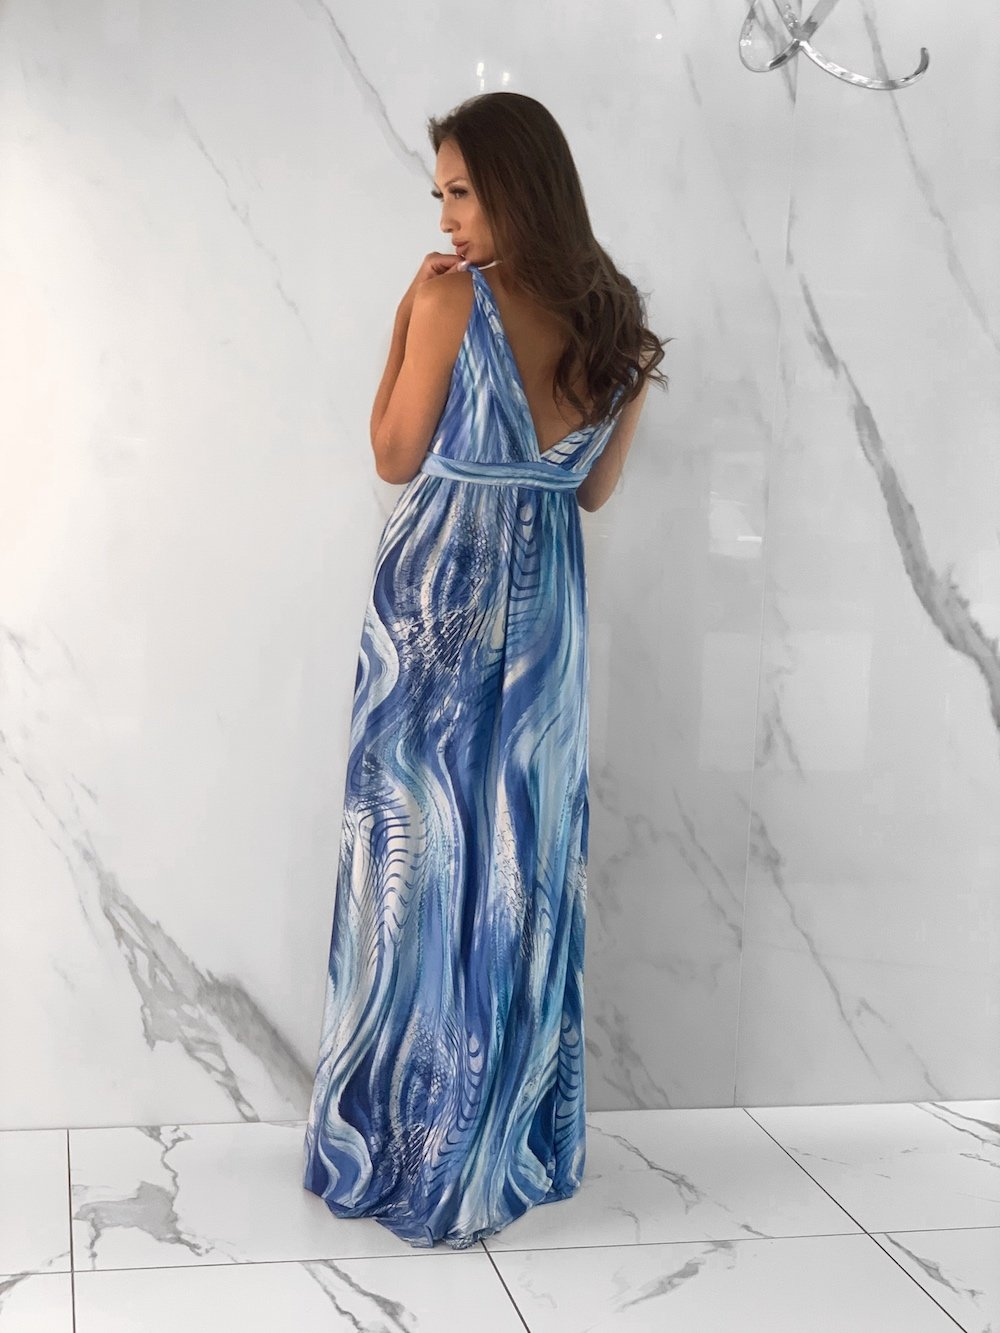 Maldives Dress, Women's Blue Dresses